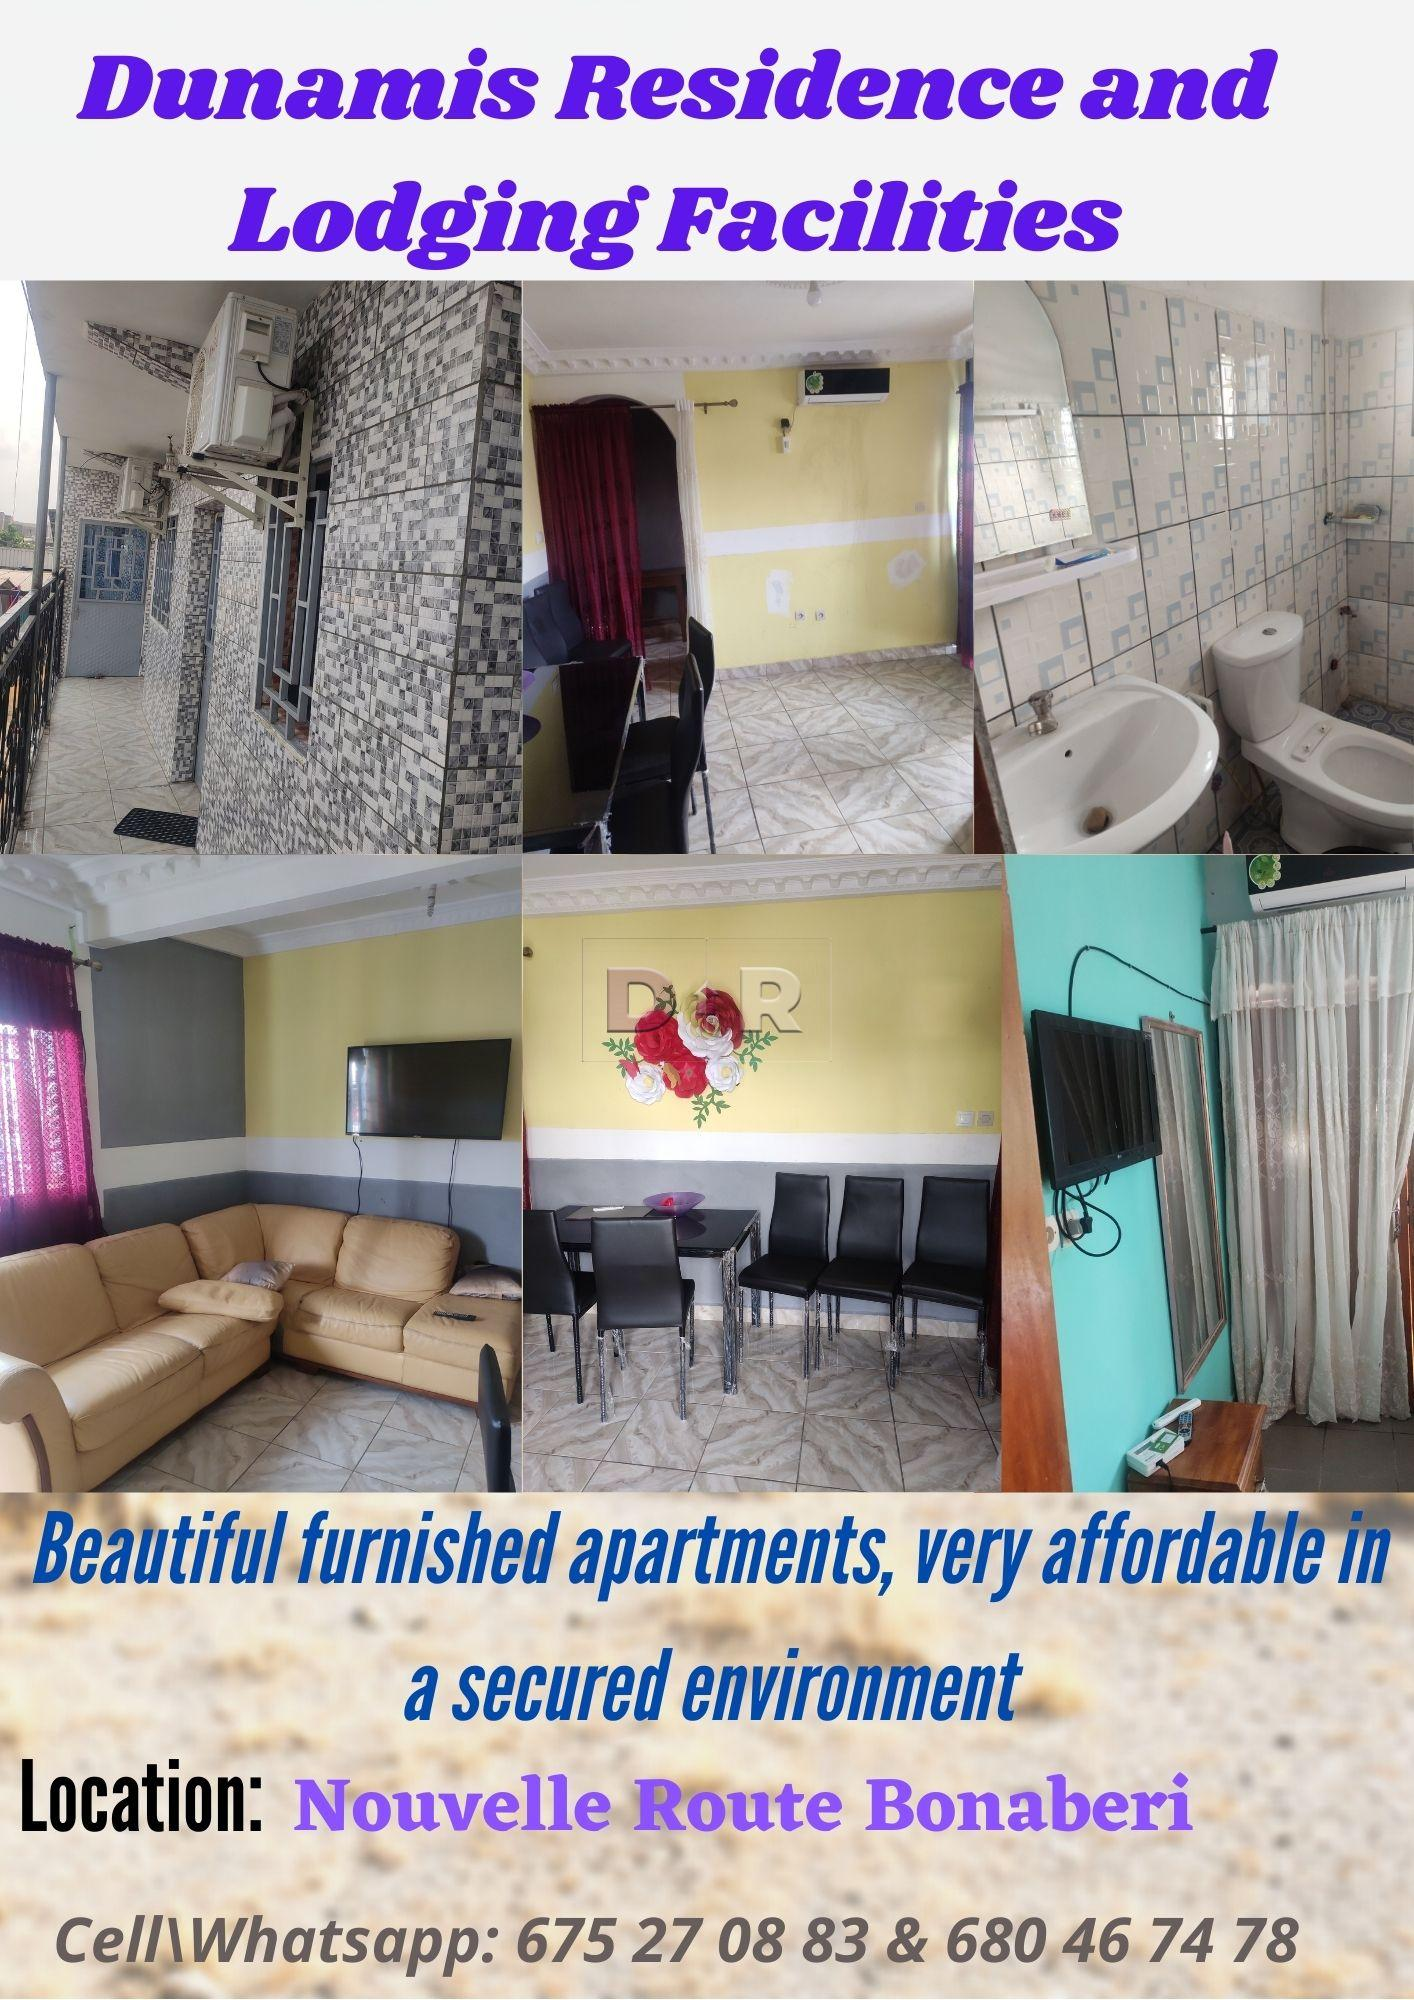 Dunamis Residence & Lodging facilities